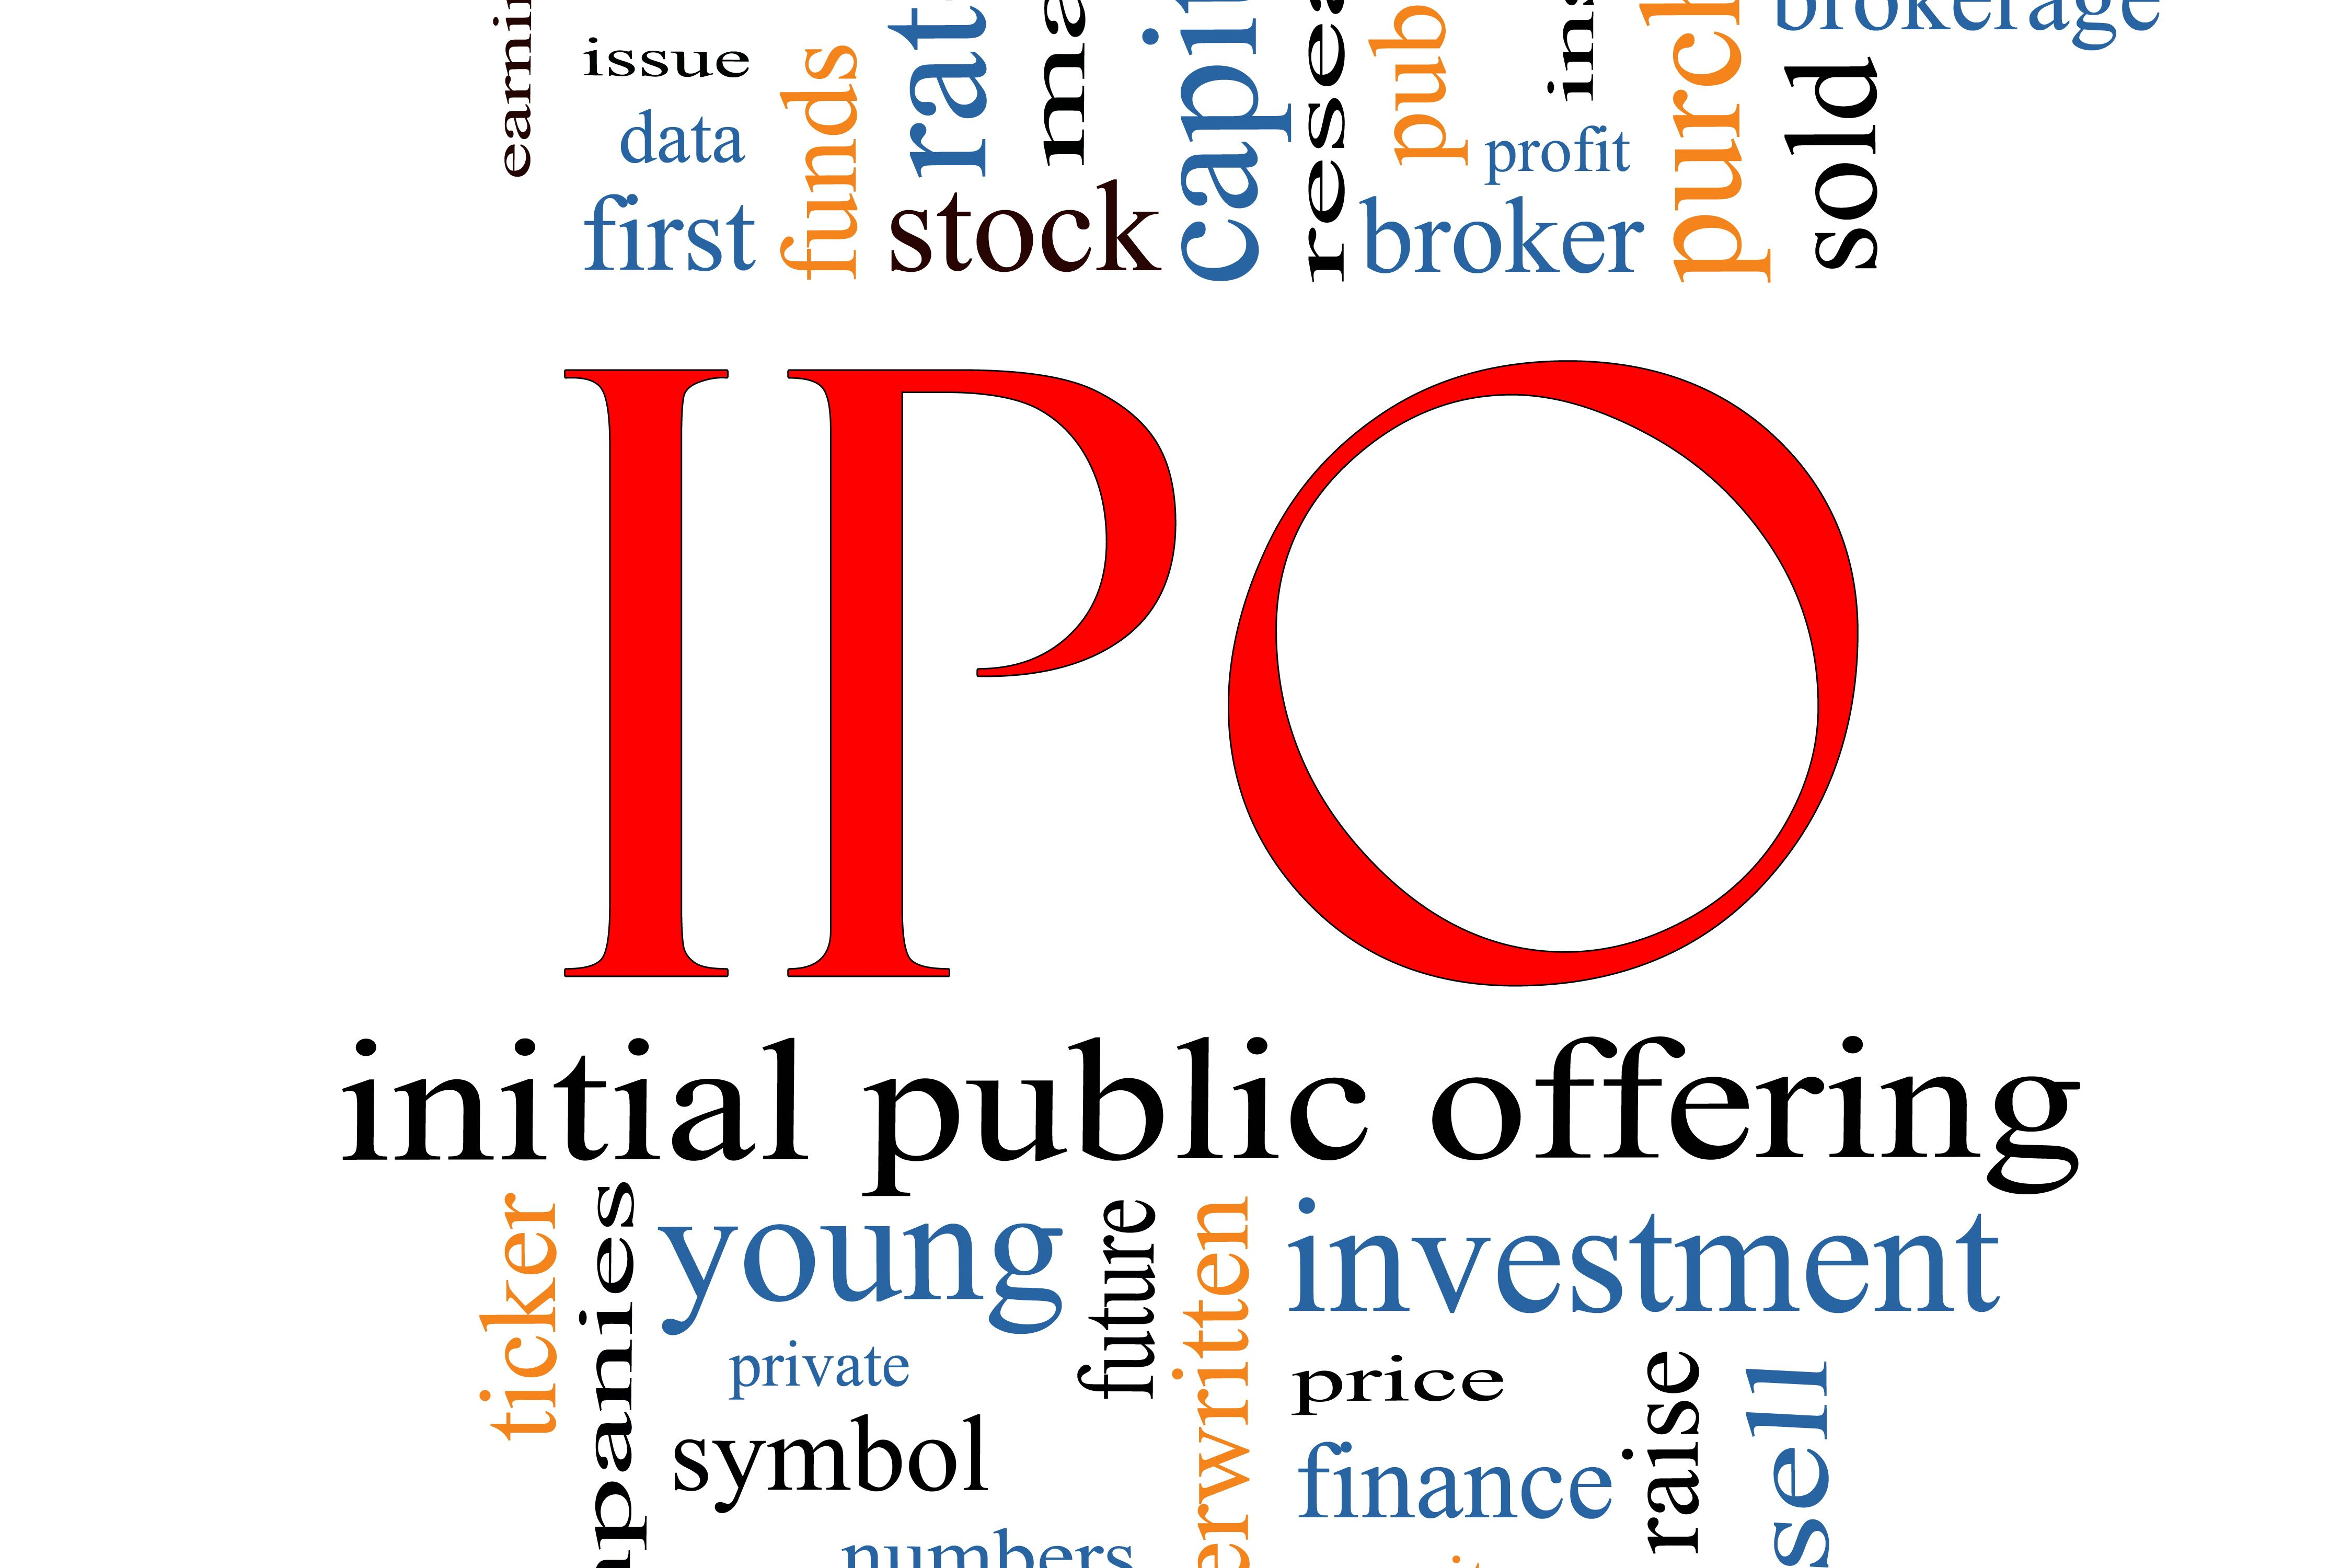 ipo grading Ipo grading is made mandatory for all unlisted companies wishing to come for public issue ipo grading process is compulsory by amending sebi (disclosure and investor protection) guidelines 2000 the purpose of such step is to provide investors additional information to assess company fundamentals before investing.